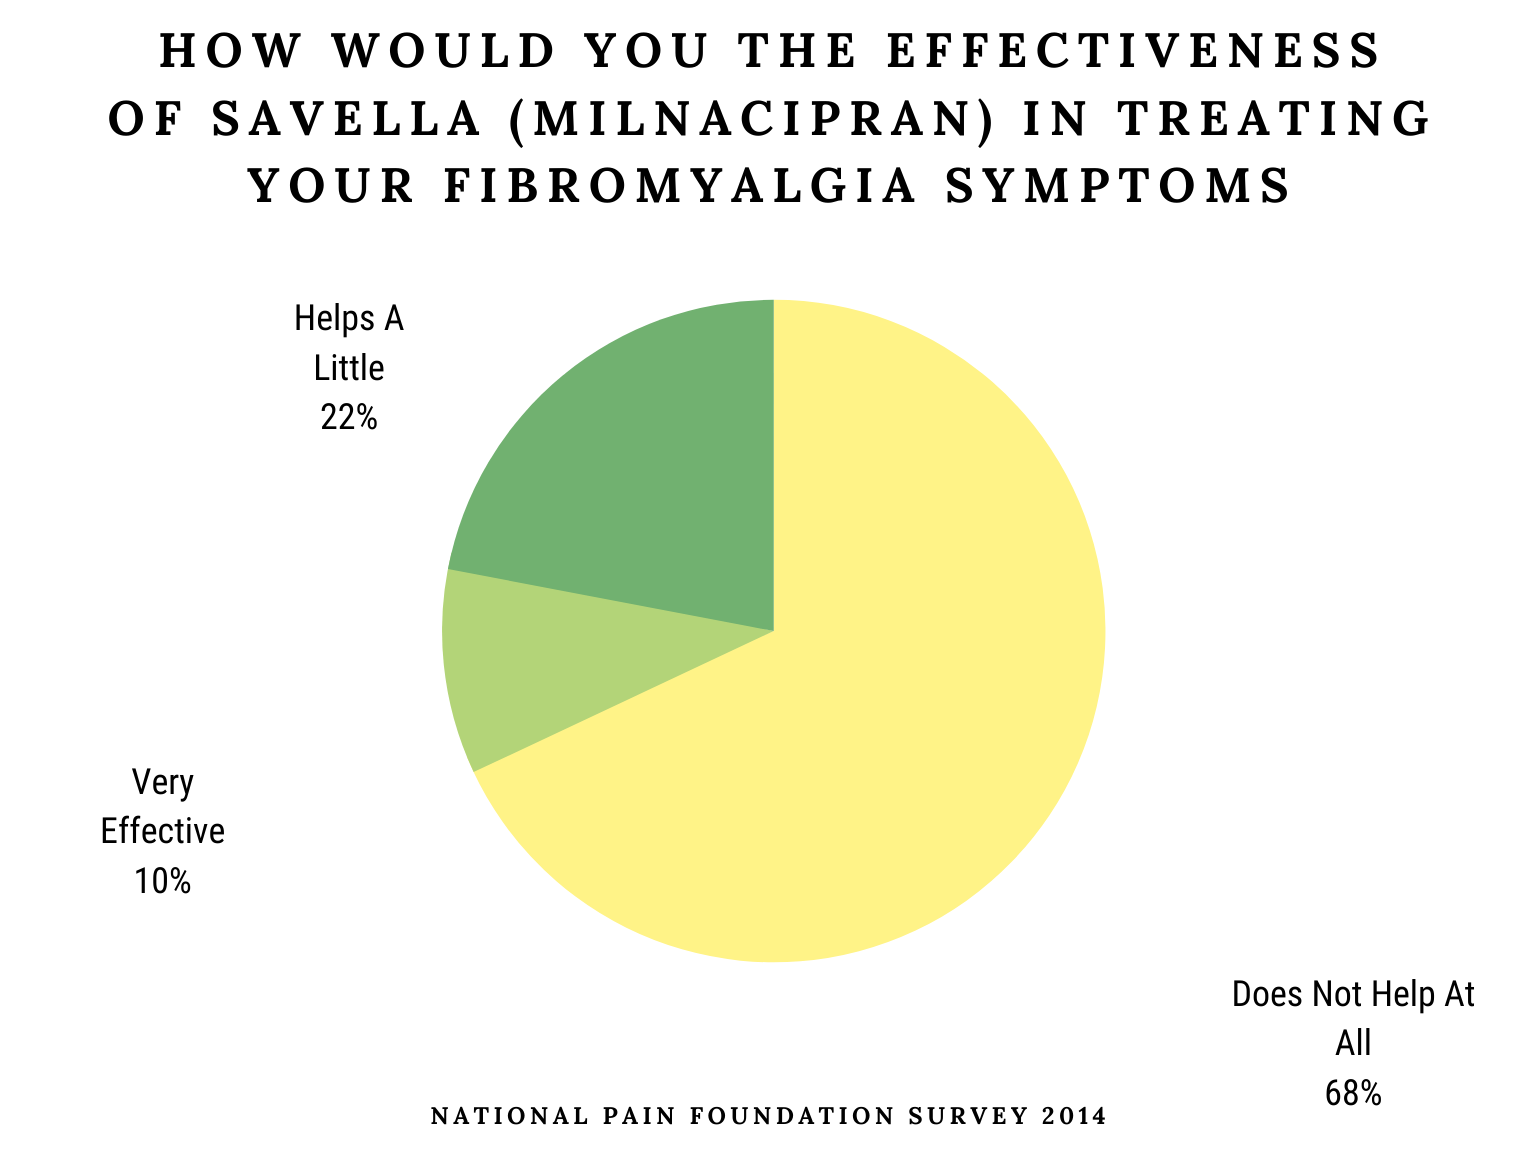 How Would You The Effectiveness Of savella (Milnacipran) In Treating Your Fibromyalgia Symptoms